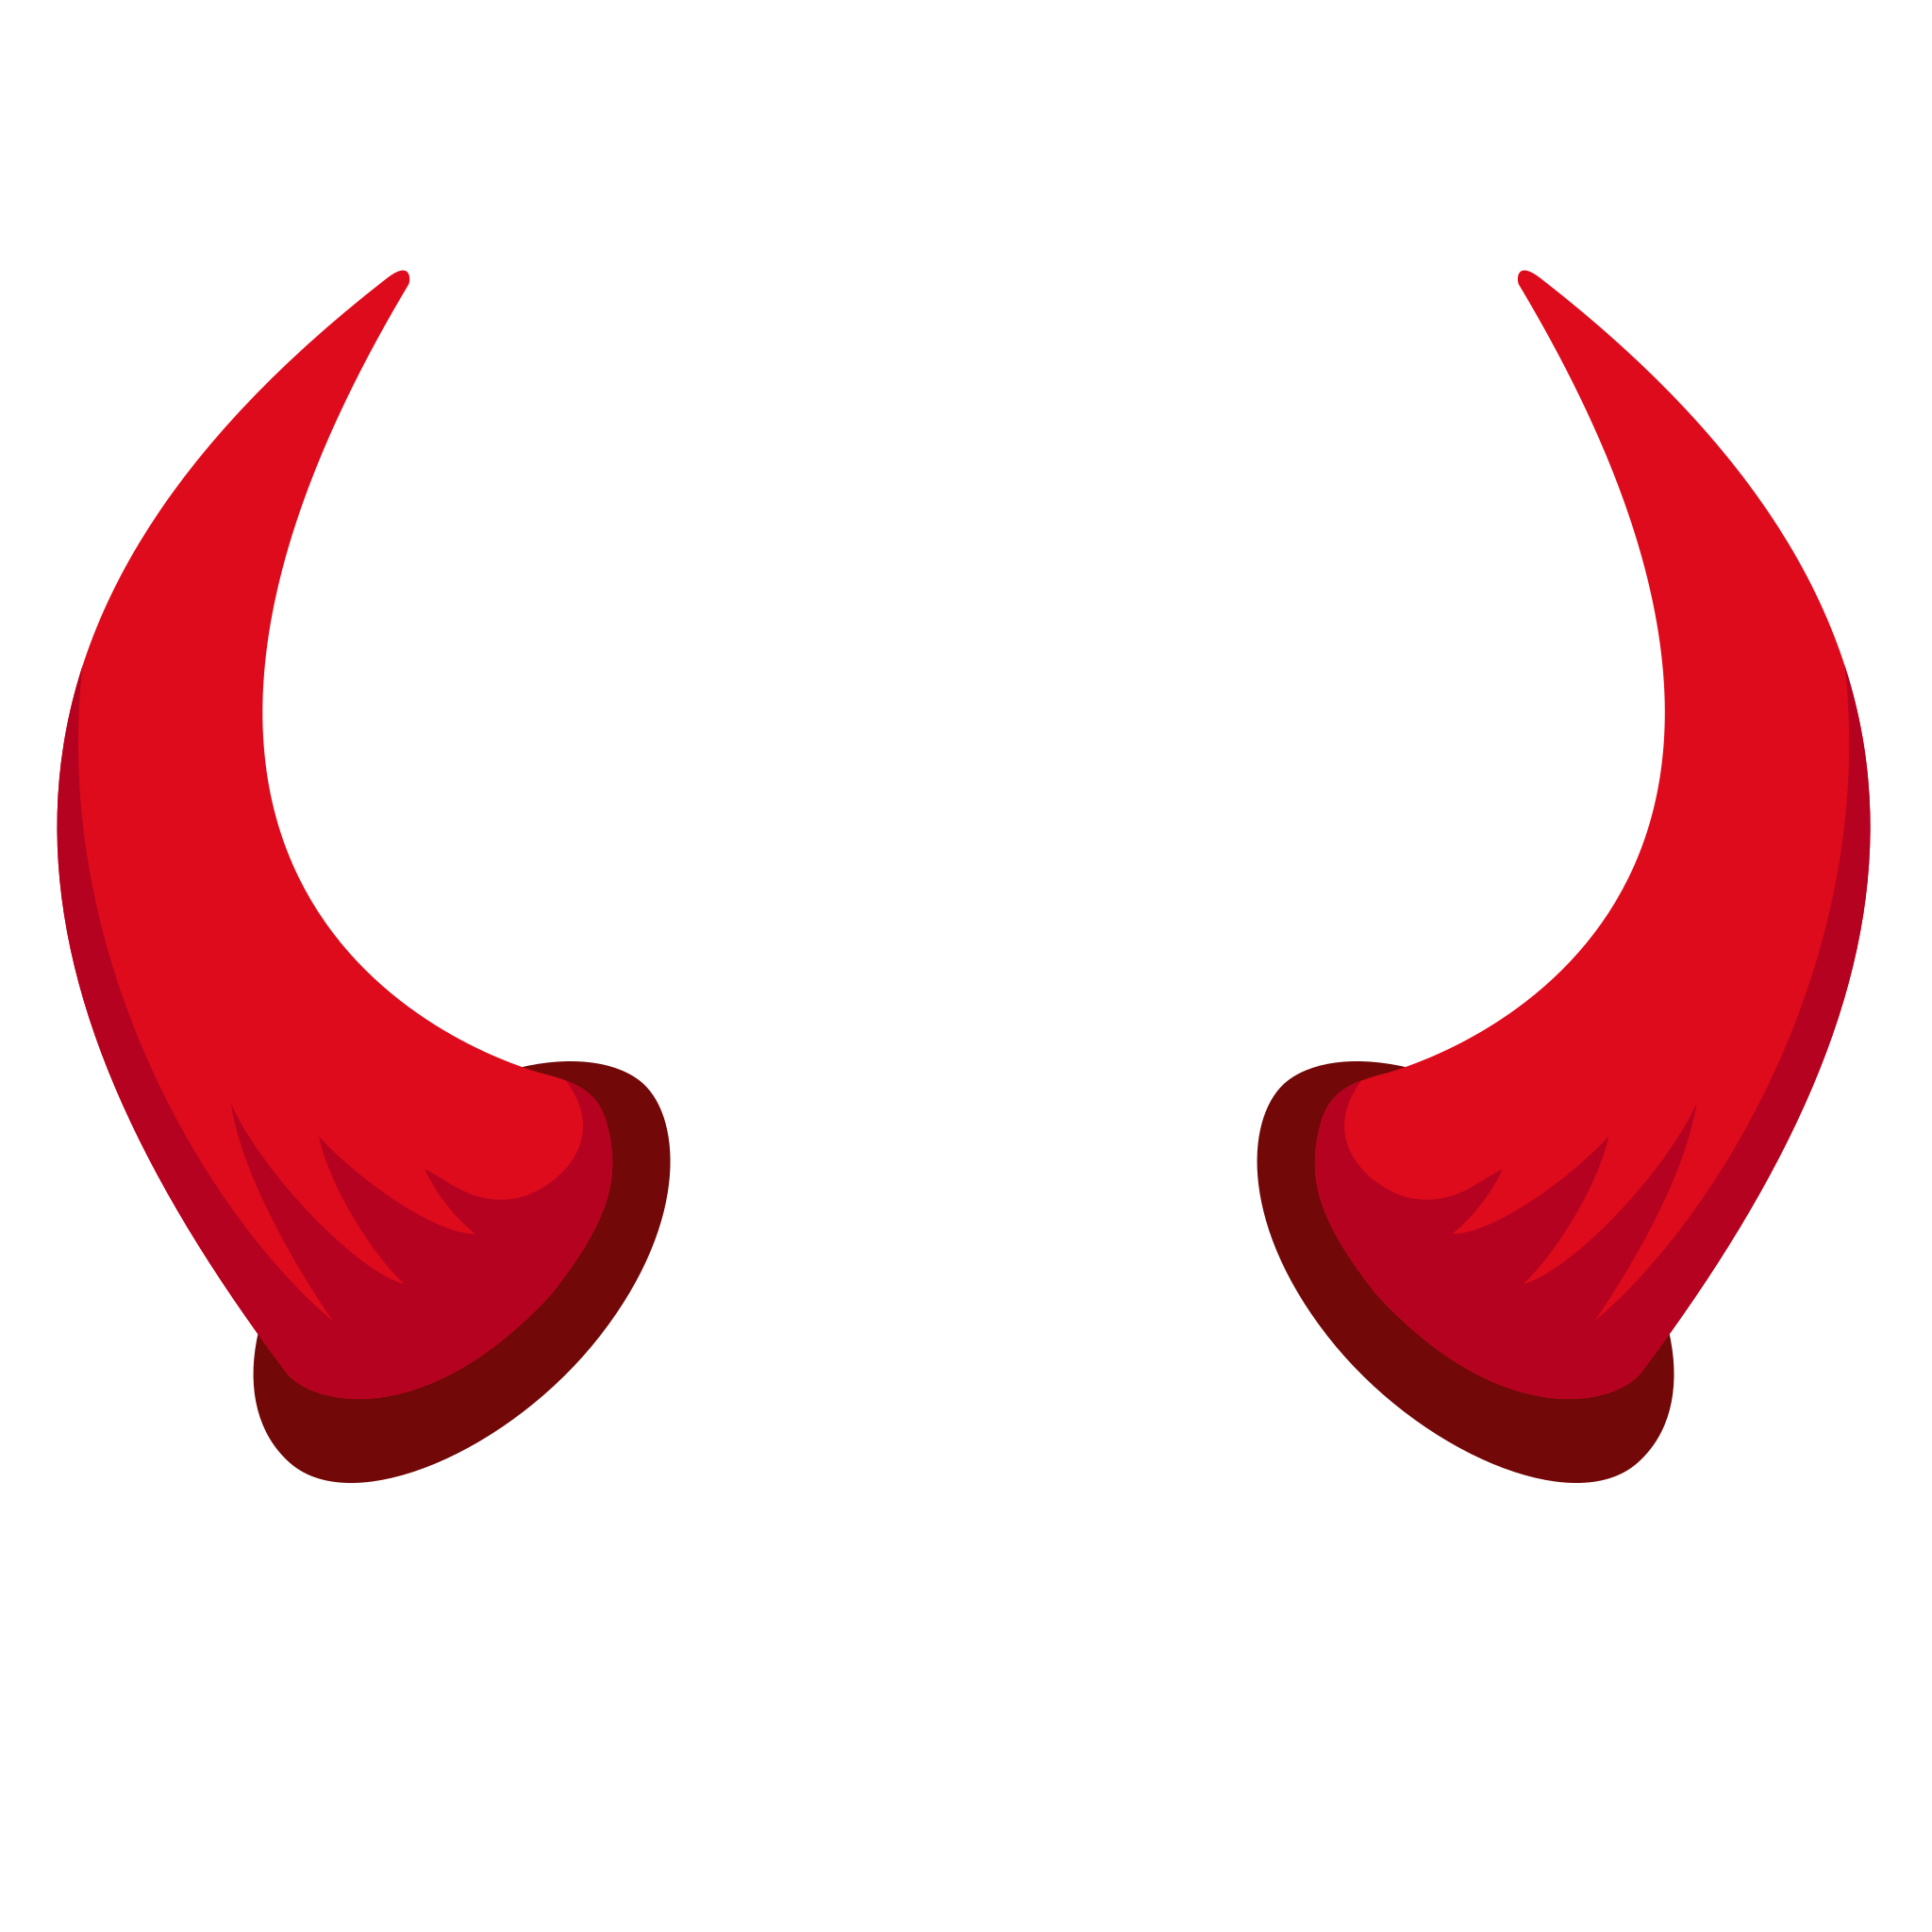 Horns clipart image royalty free download Devil horns clipart clipart images gallery for free download ... image royalty free download